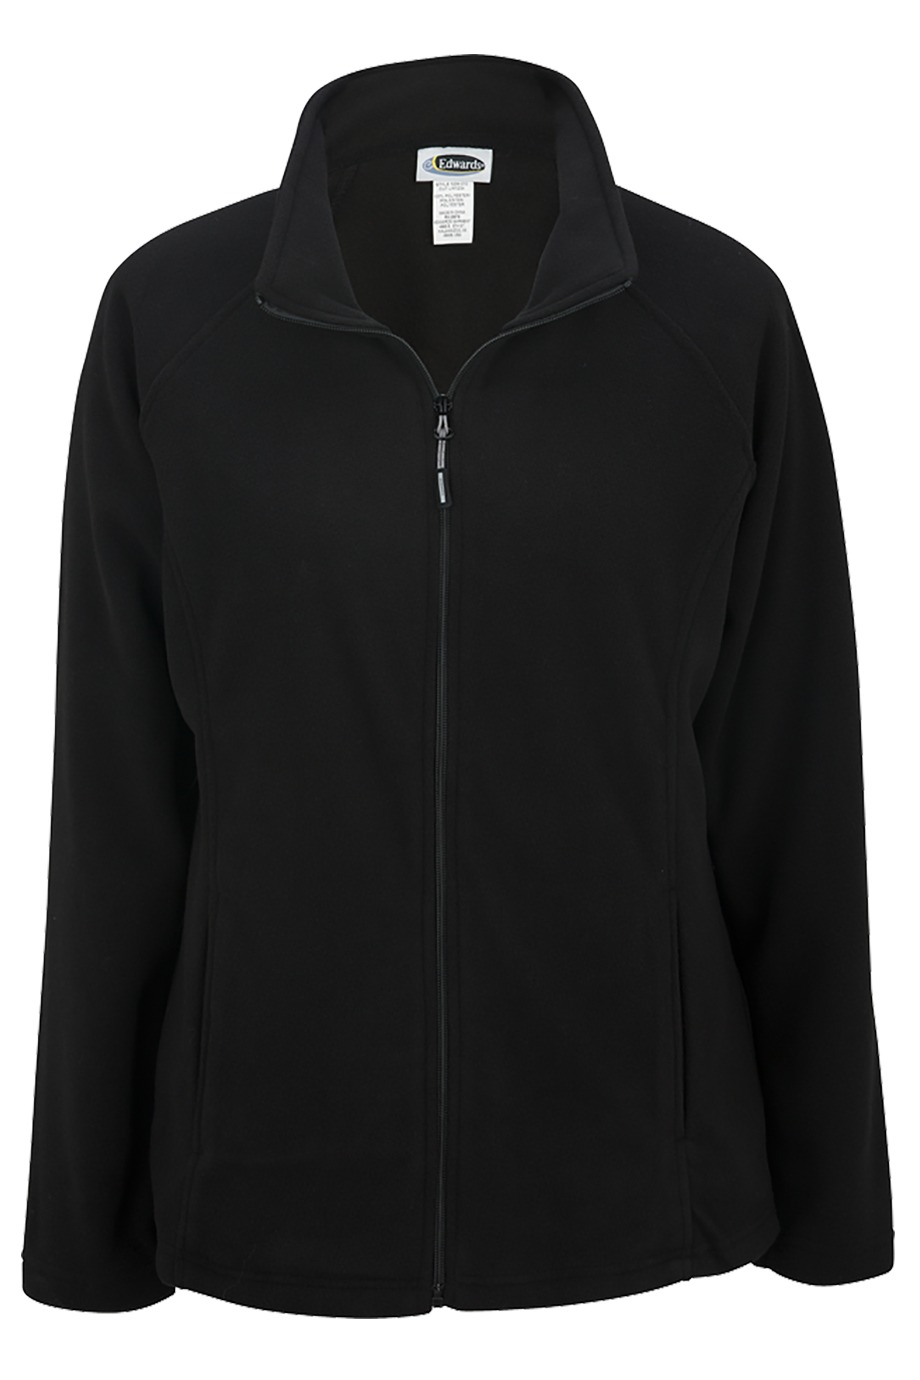 Edwards Garment 6450 - Women's Mircofleece Jacket